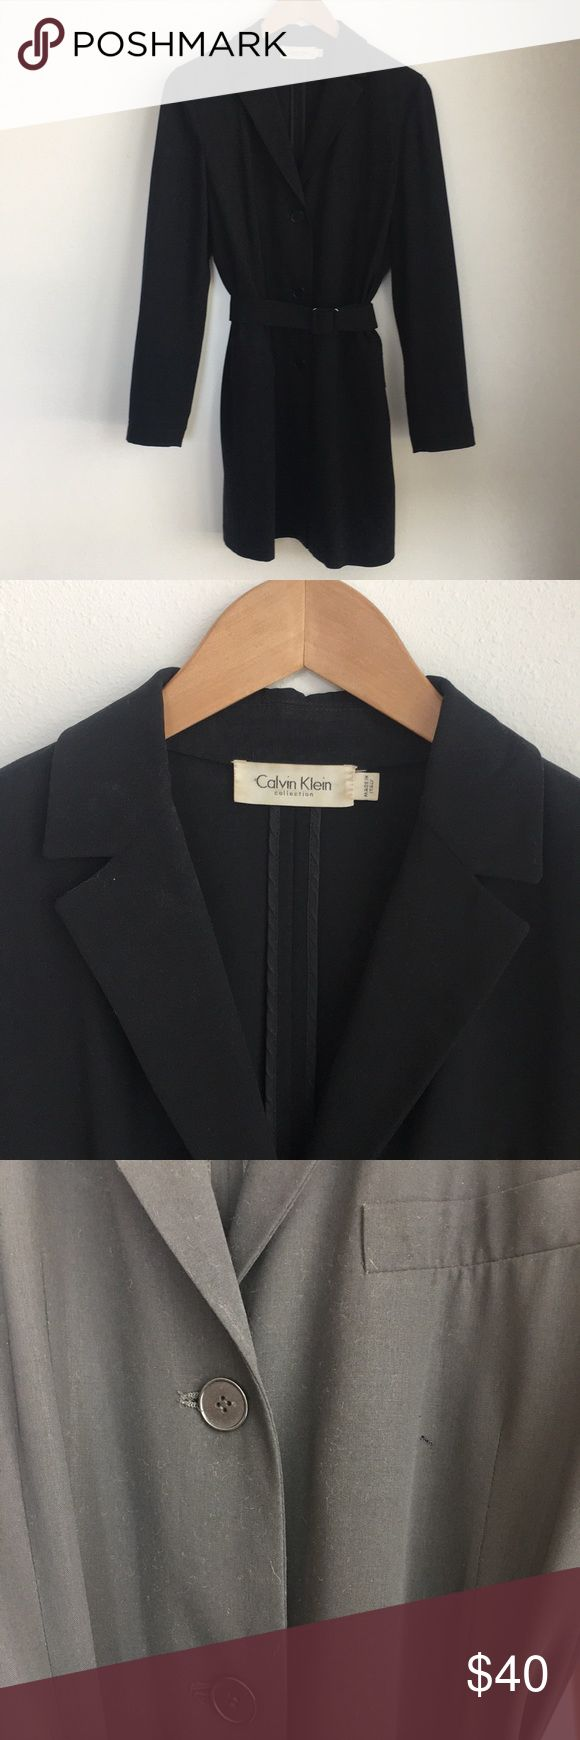 Calvin Klein Springtime Sport Coat 90's casual sports coat by Calvin Klein. Lightweight, has pocket details that are non functional. Perfect coverup for going out on a warmer night. Some wear on the corners of the belt buckle and small hole on right breast. However, it's not noticeable because there is a facing behind it. Calvin Klein Collection Jackets & Coats